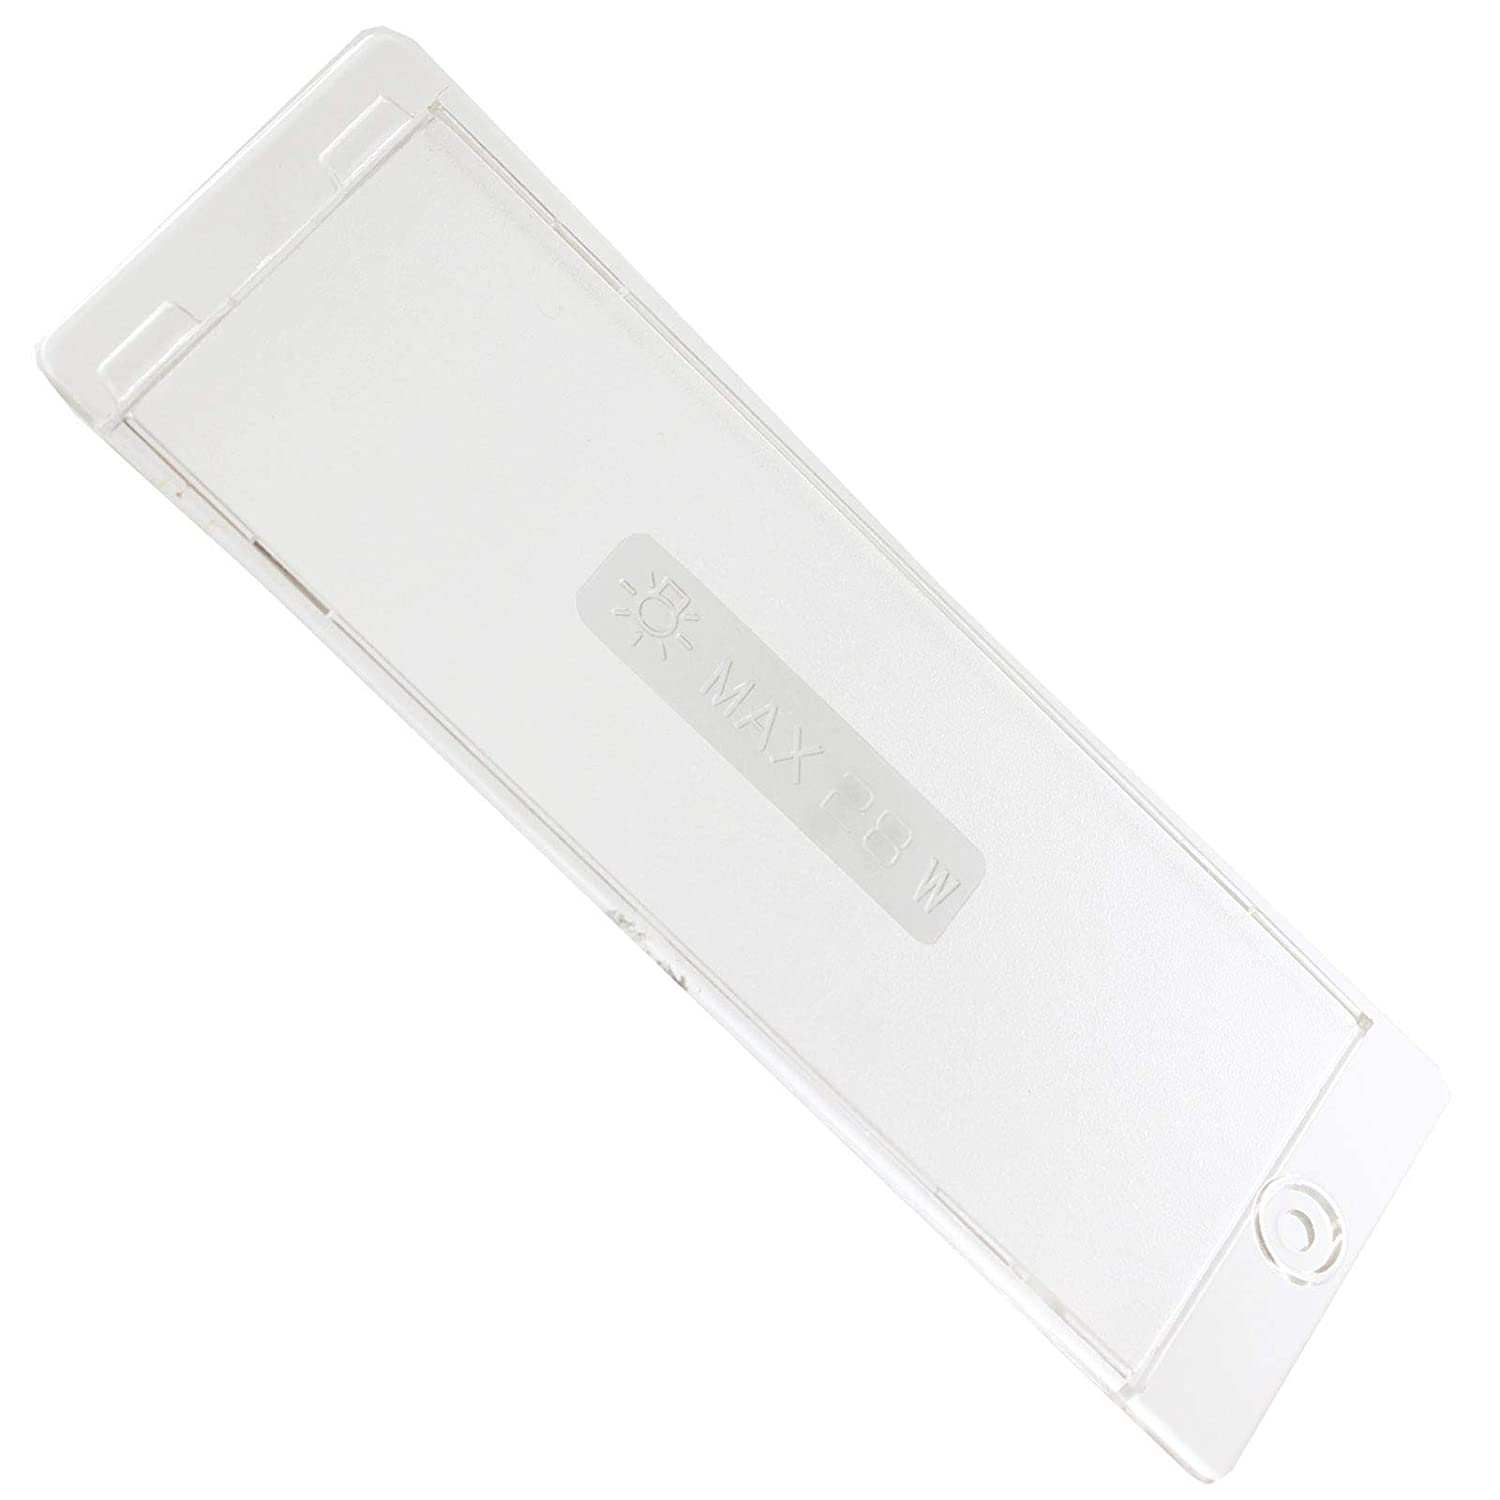 SPARES2GO Light Diffuser//Lens Cover Plate fits Ignis Cooker Hood 170mm x 63mm